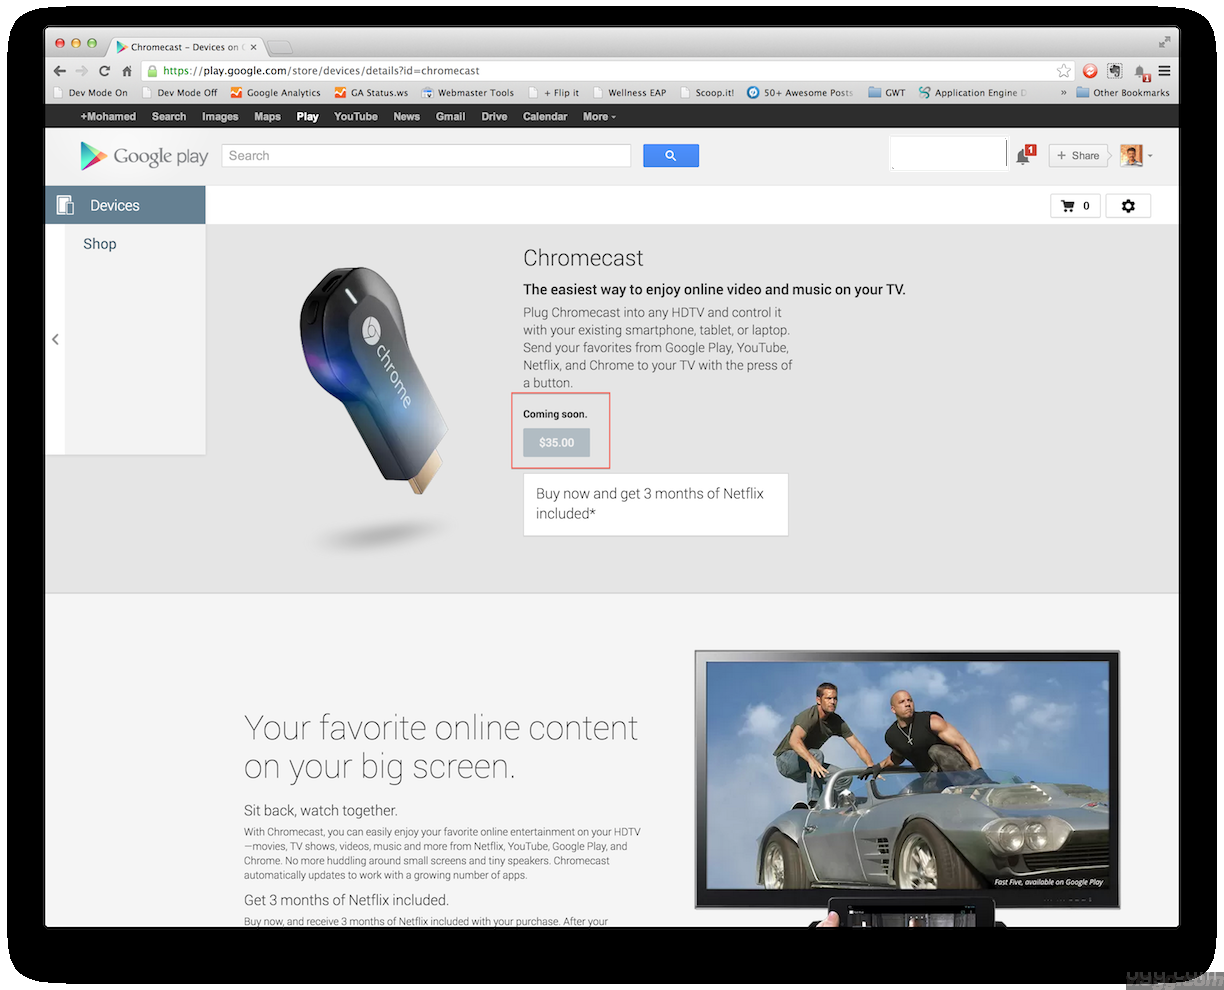 New Google Chromecast device sold out in couple of hours!